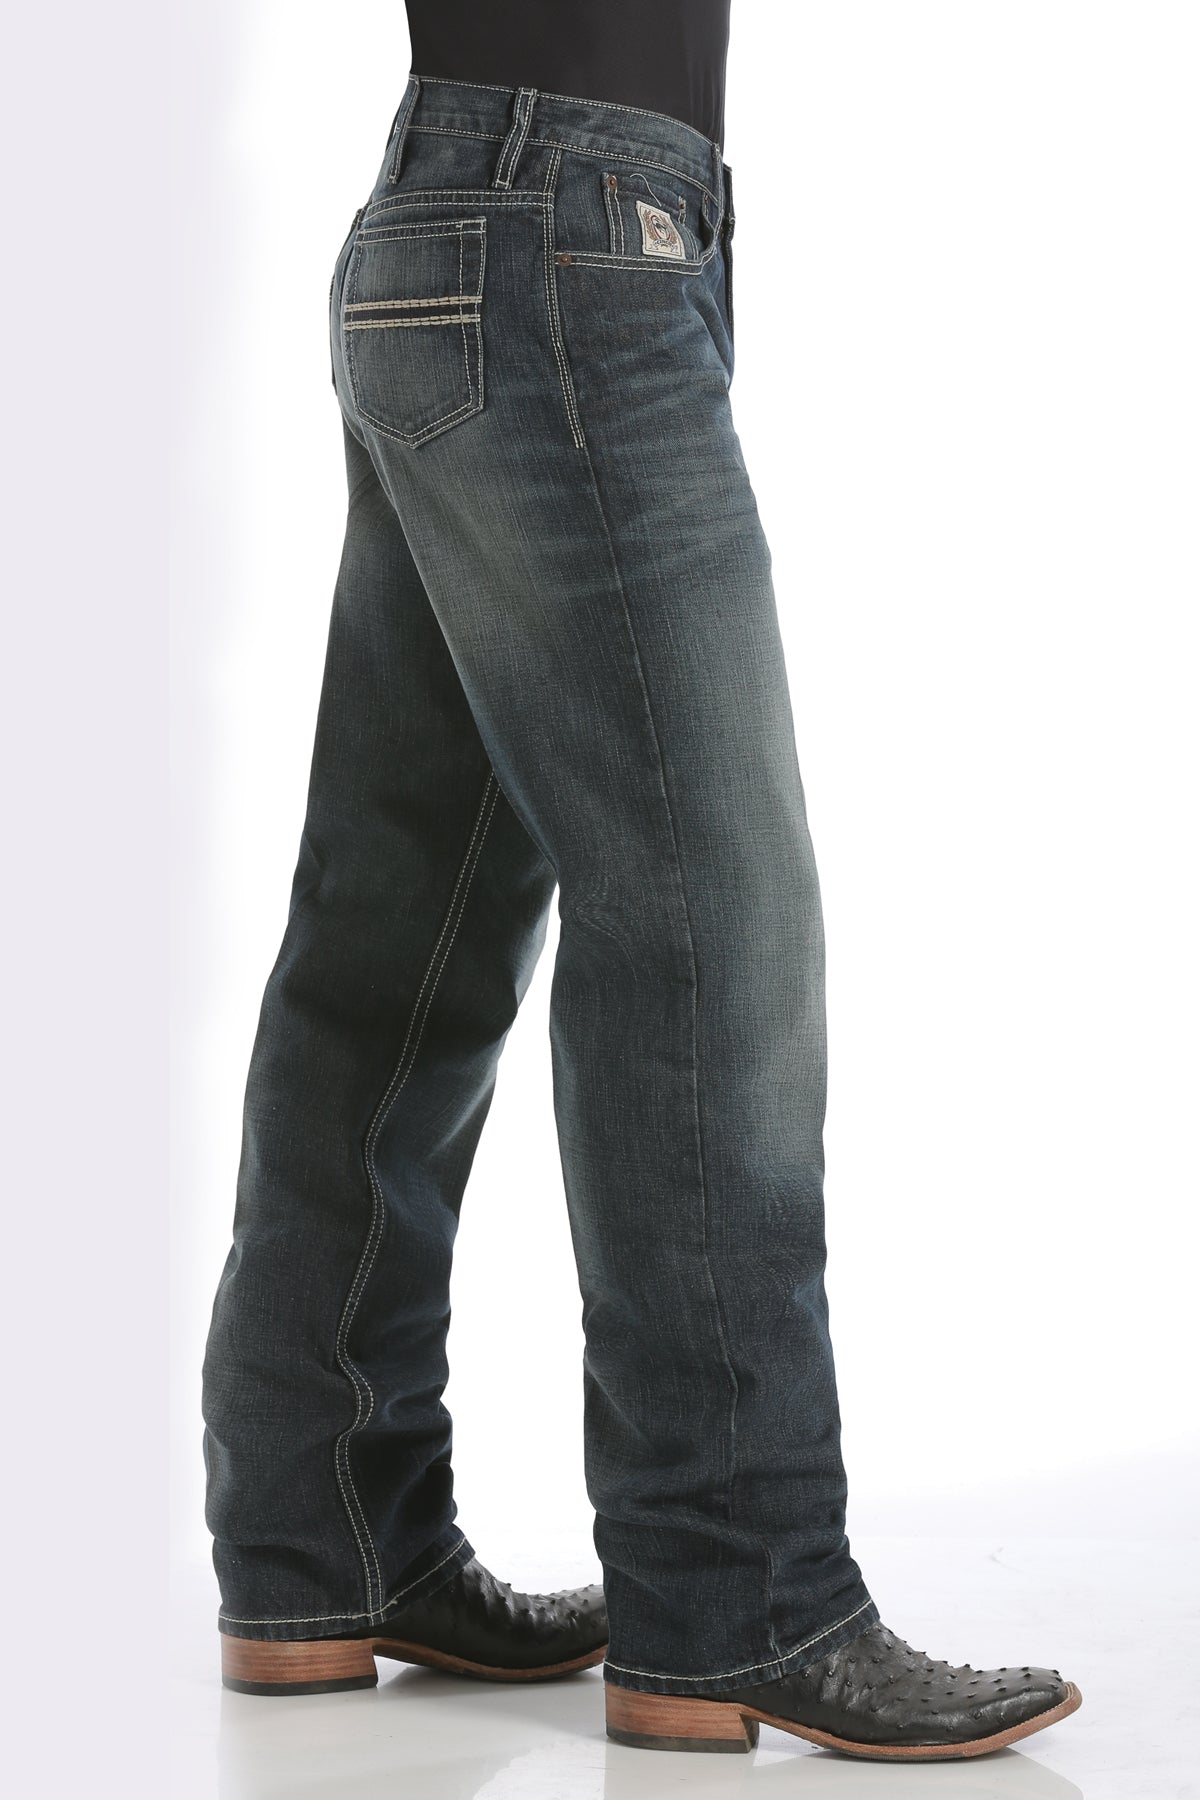 CINCH Men's Relaxed Fit White Label - Dark stonewash